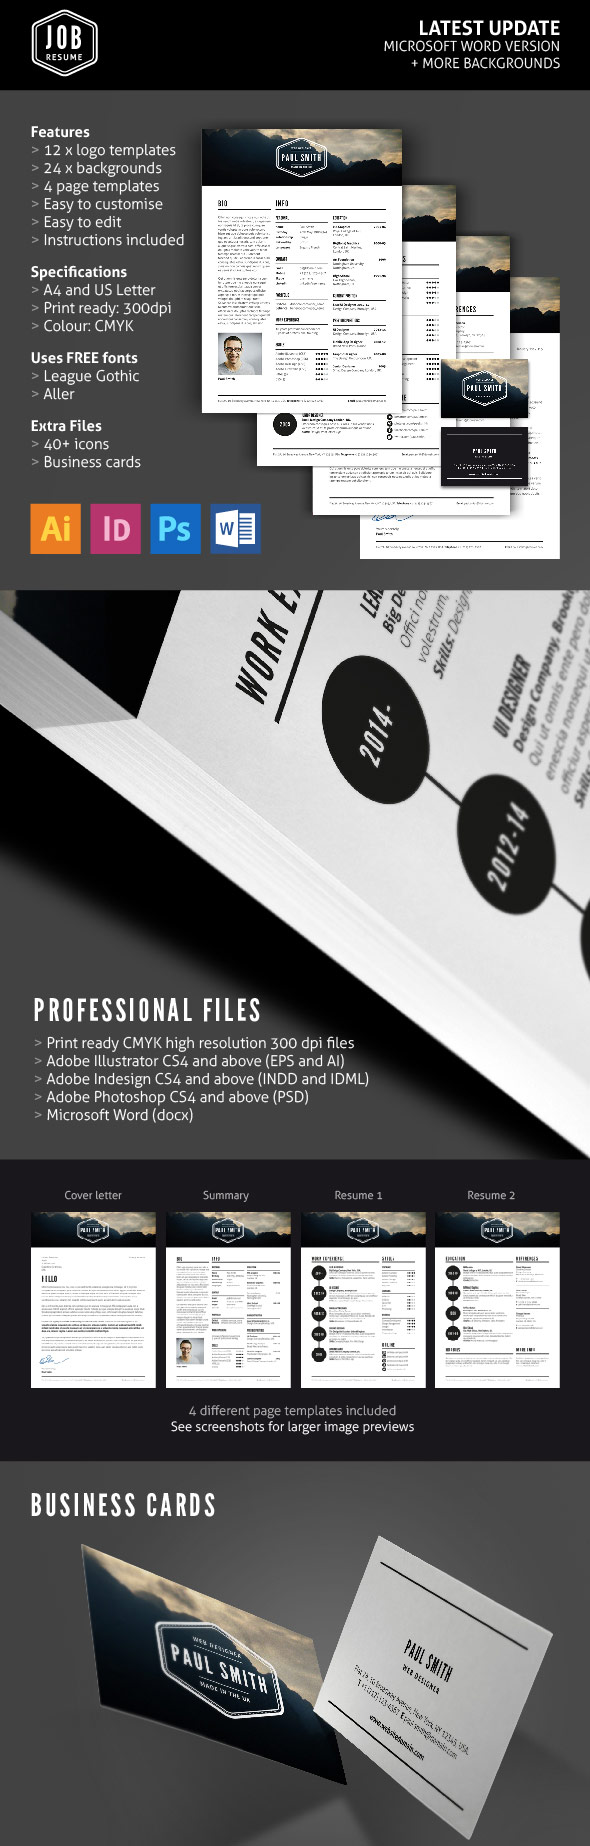 best resume templates design graphic junctiongraphic junction for photoshop job cv Resume Resume For Photoshop Job